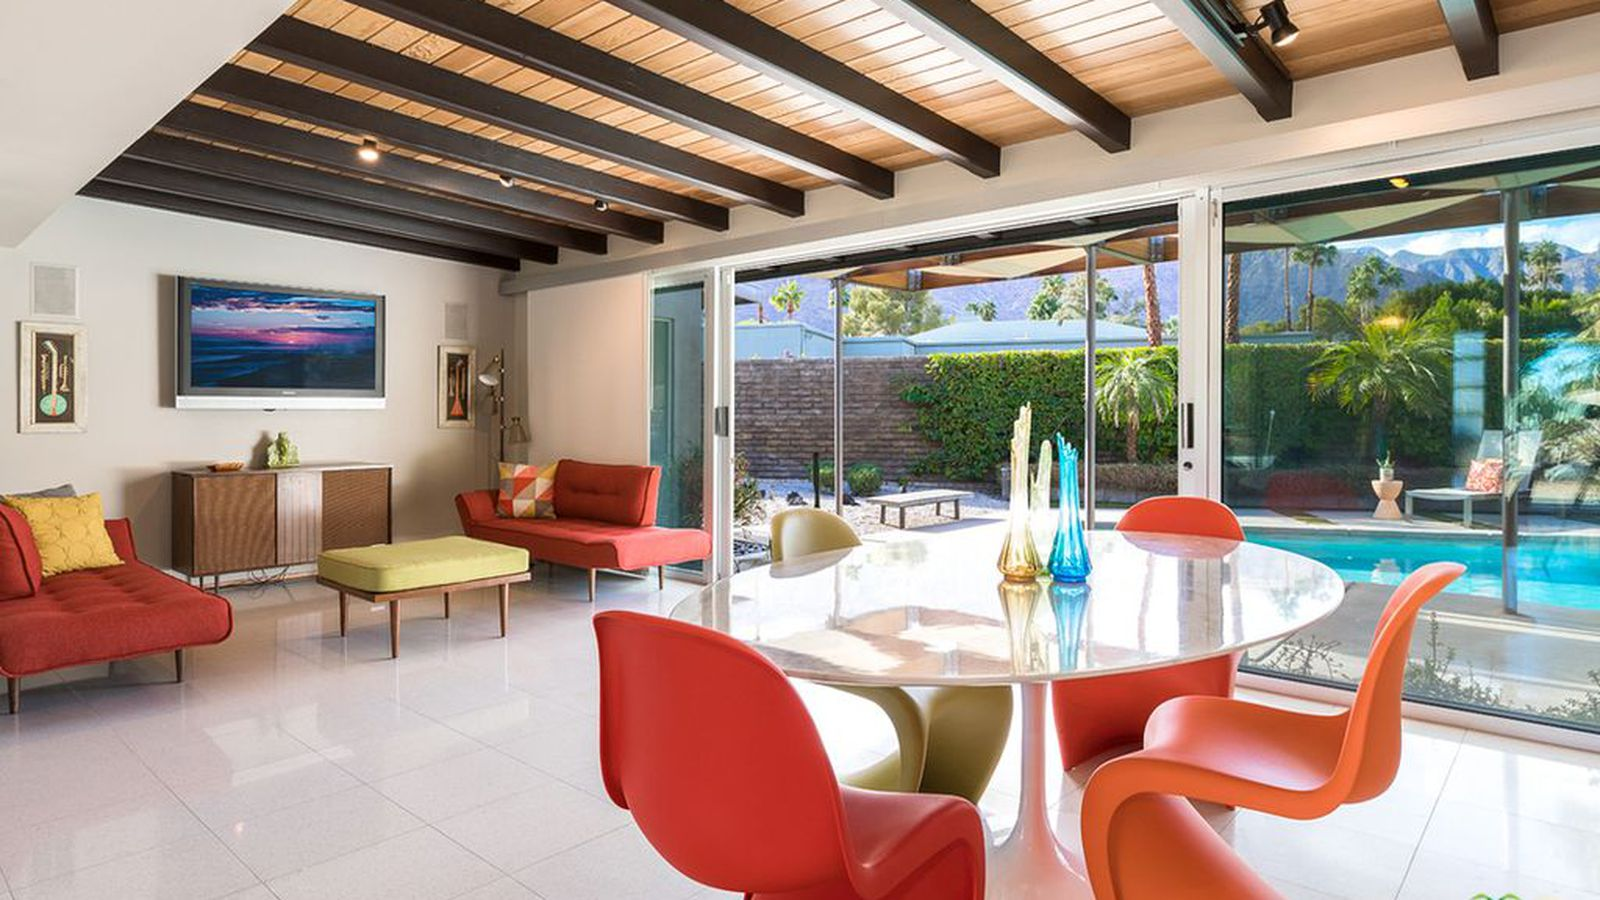 Dreamy palm springs midcentury with excellent landscaping for Palm springs mid century modern homes for sale